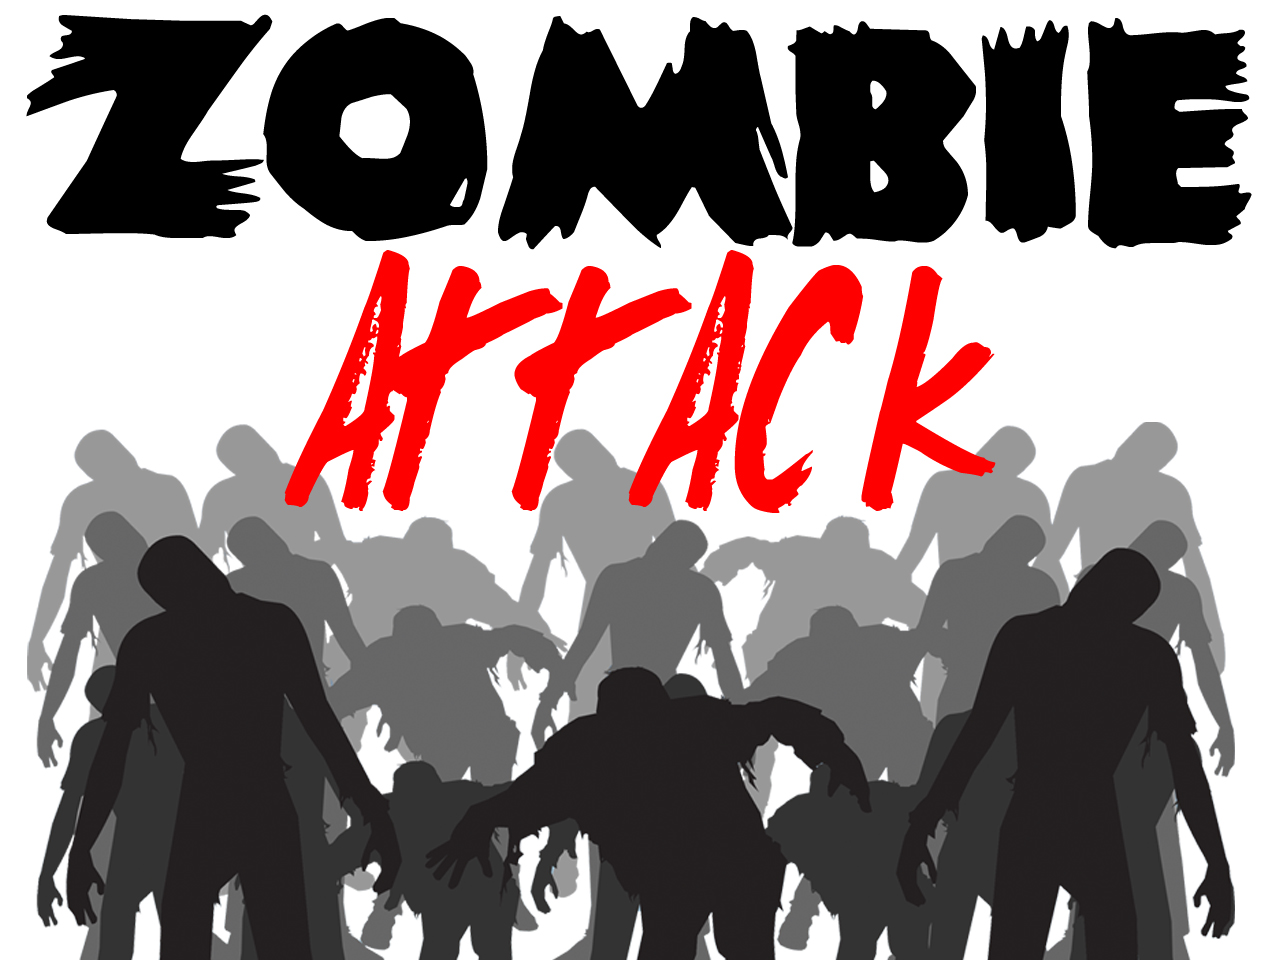 Zombie Attack Youth ministry game